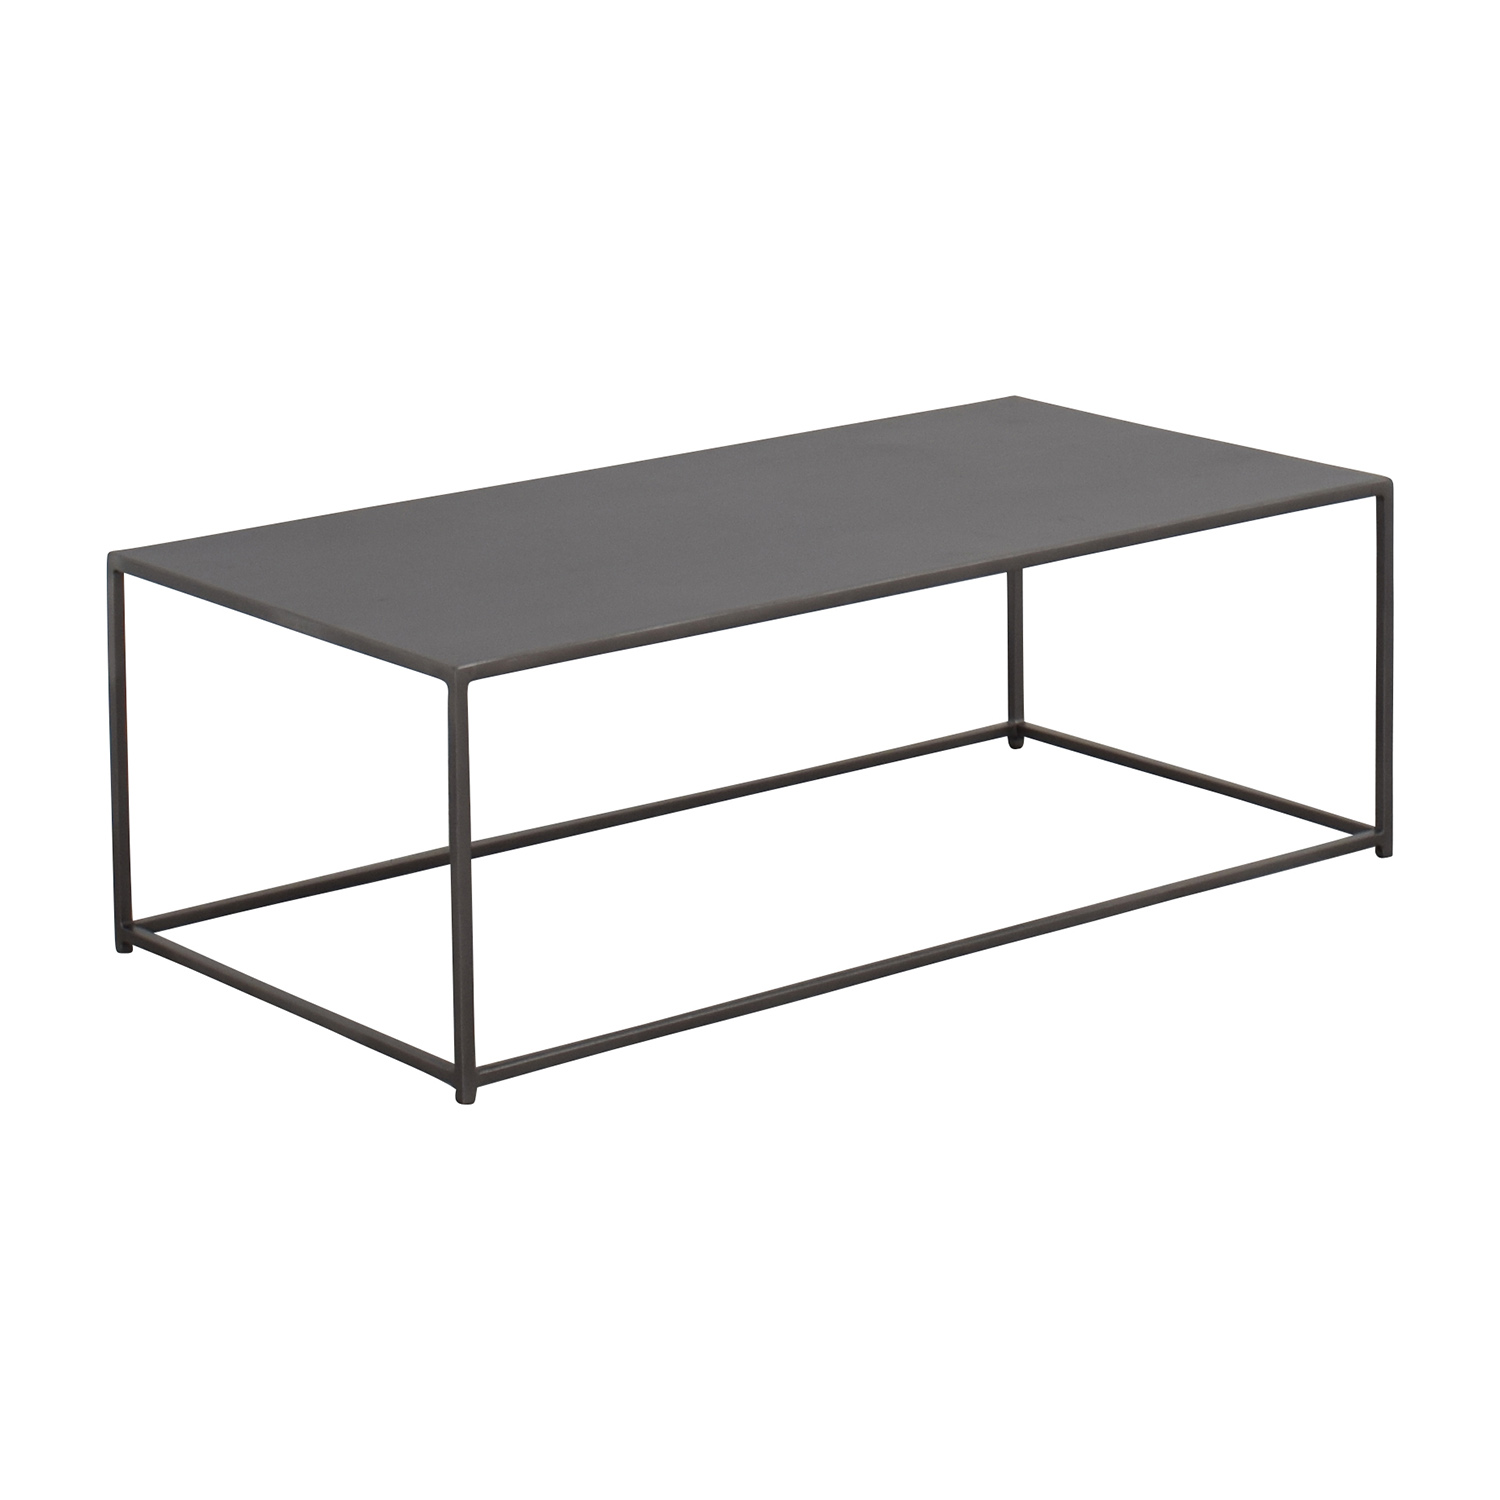 Cb2 Mill Coffee Table Rascalartsnyc